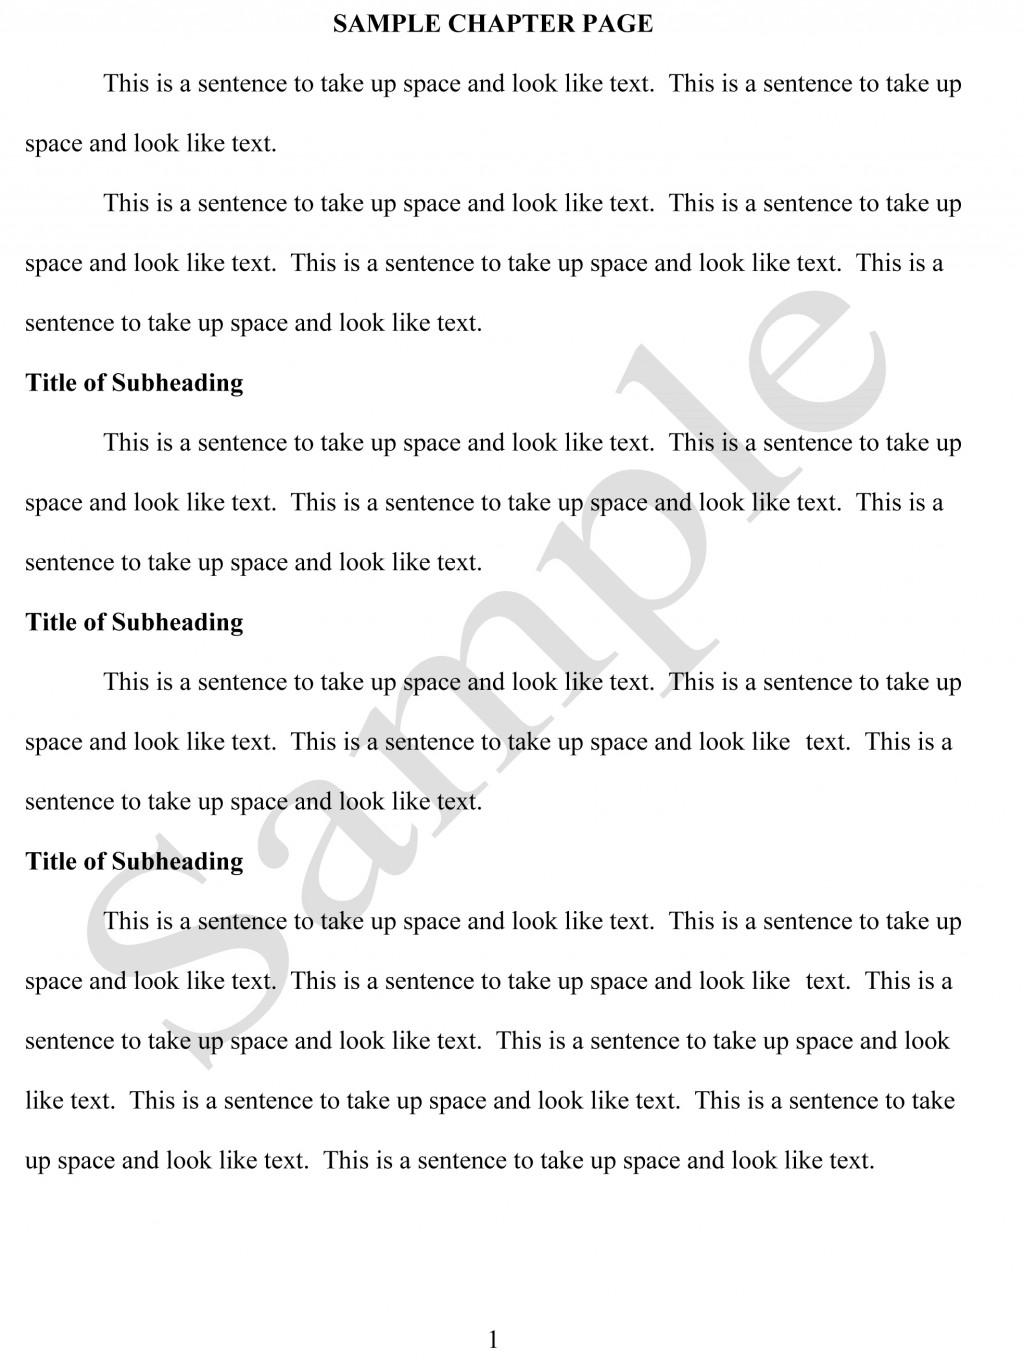 008 Narrative Essays High School Personal Introduction